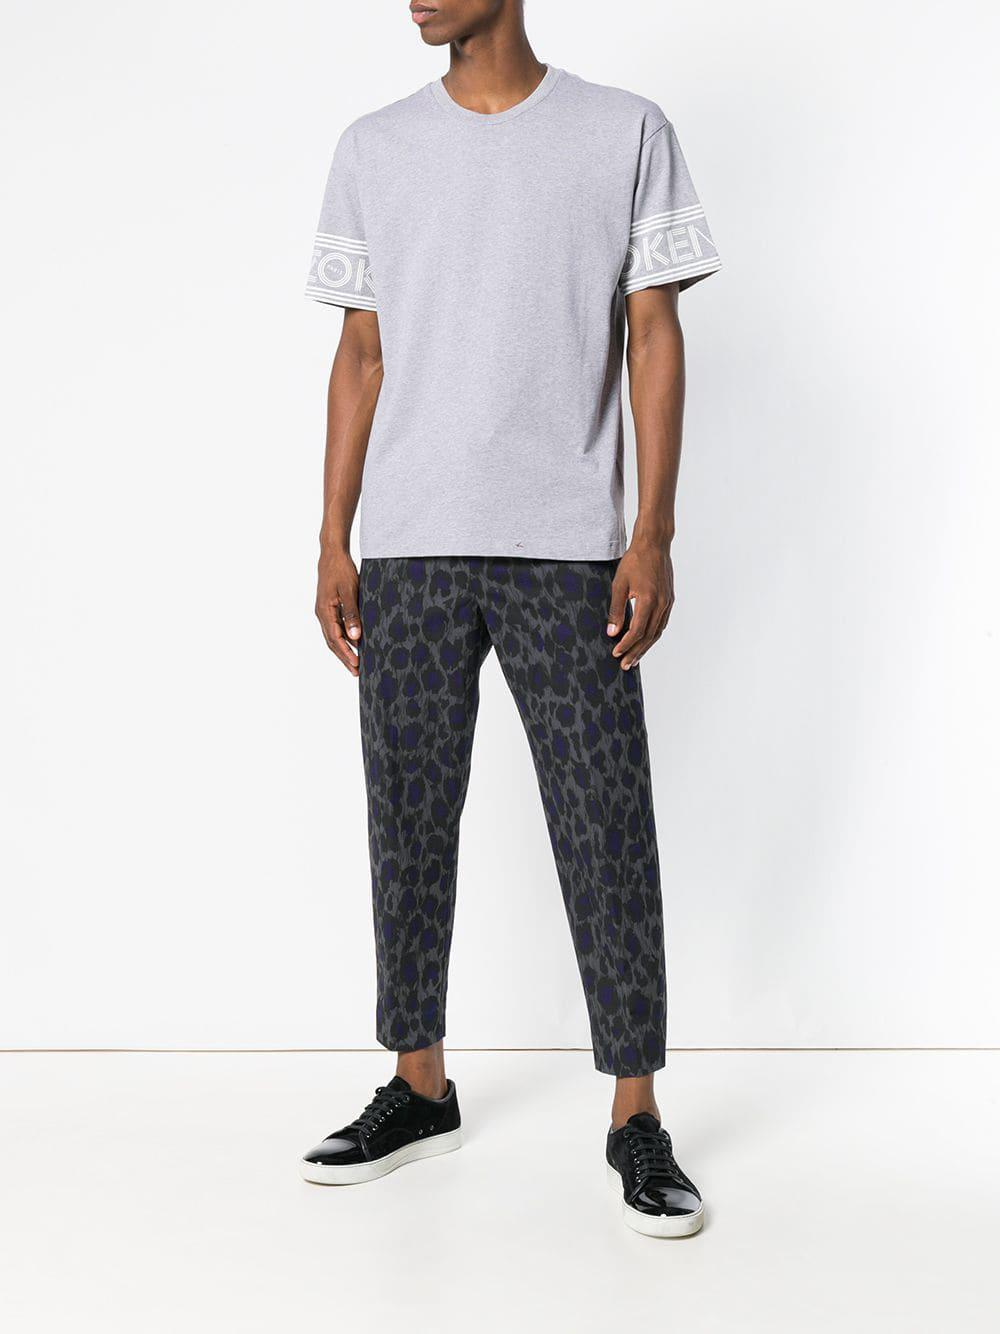 KENZO Cotton Animal-print Trousers in Grey (Grey) for Men